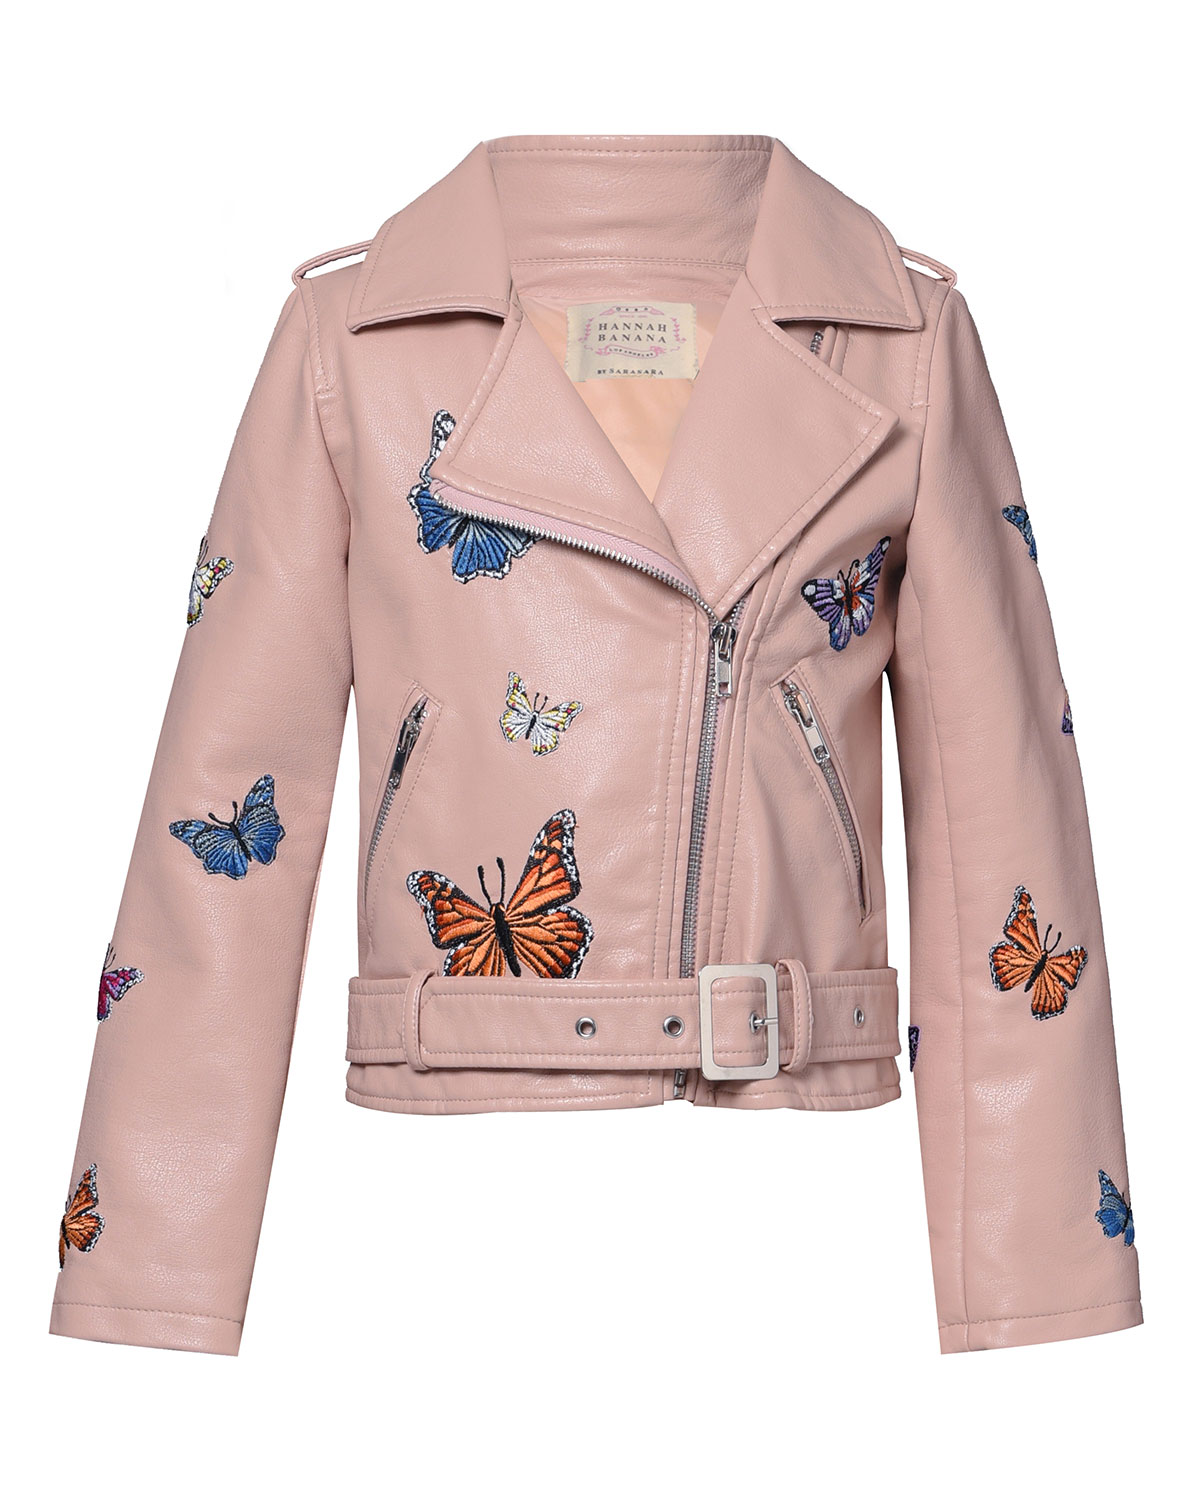 Hannah Banana Girl's Vegan Leather Butterfly Moto Jacket, Size 7-14